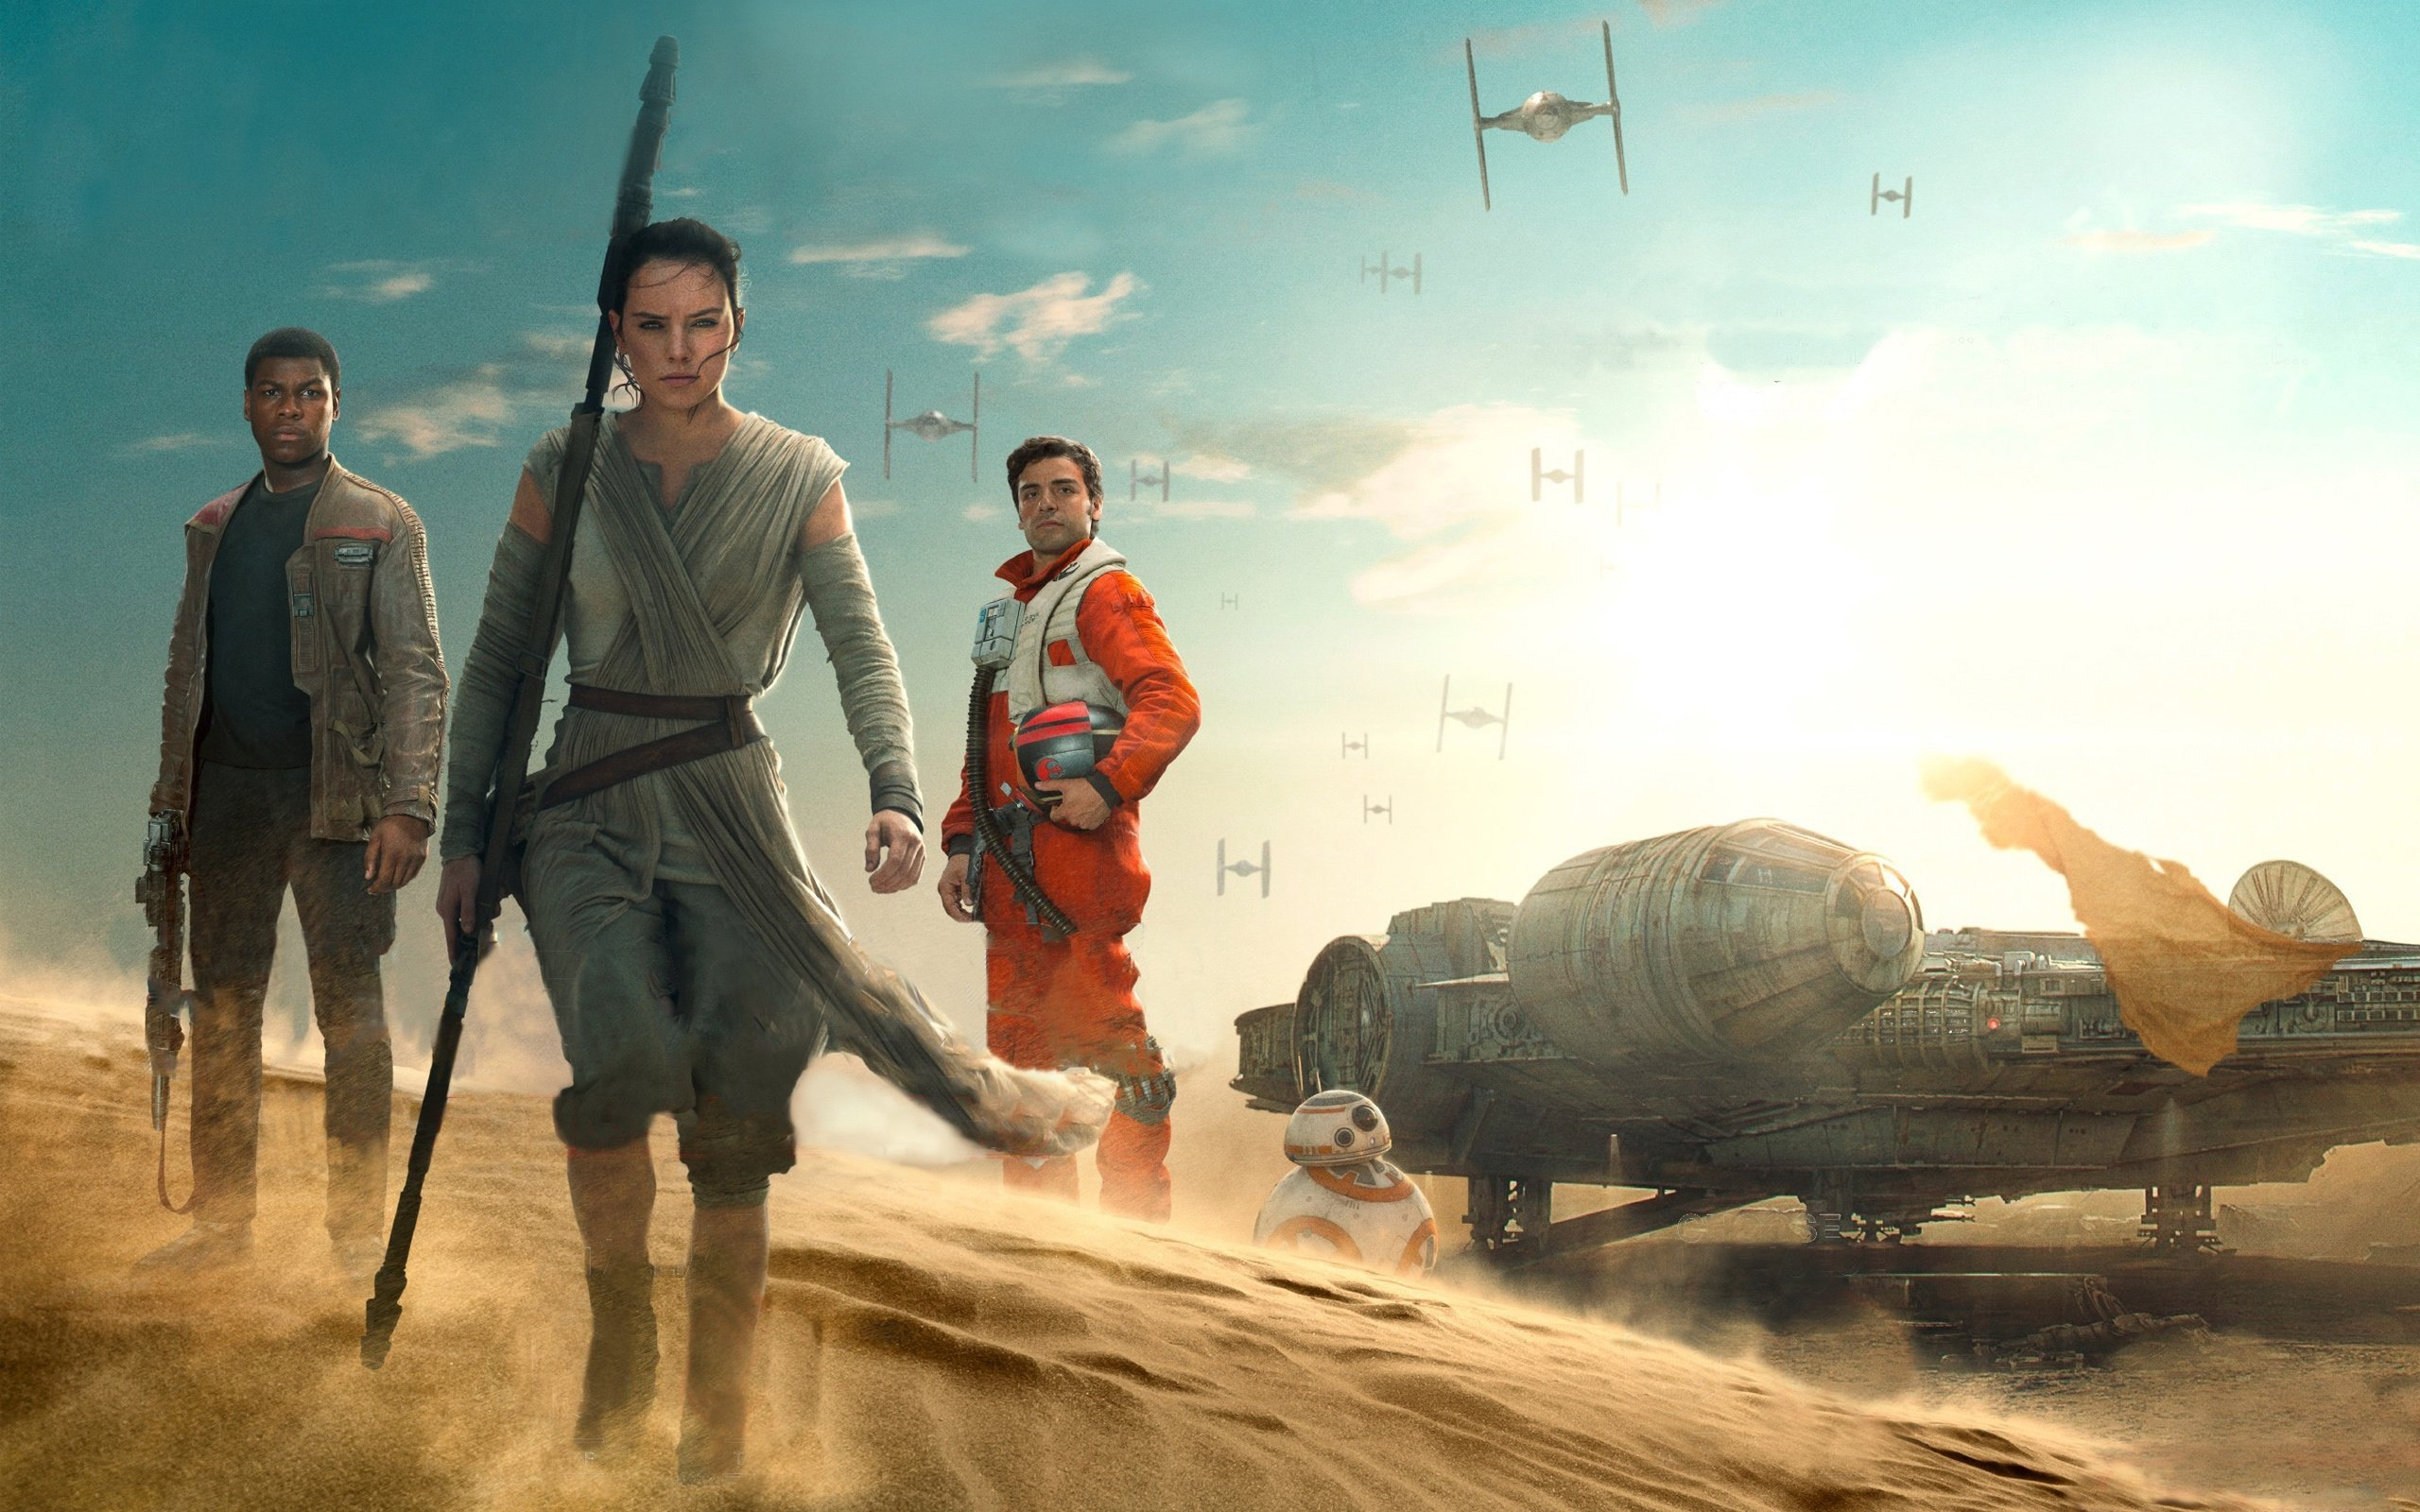 Star Wars The Force Awakens 2015 Wallpapers HD Wallpapers 2560x1600